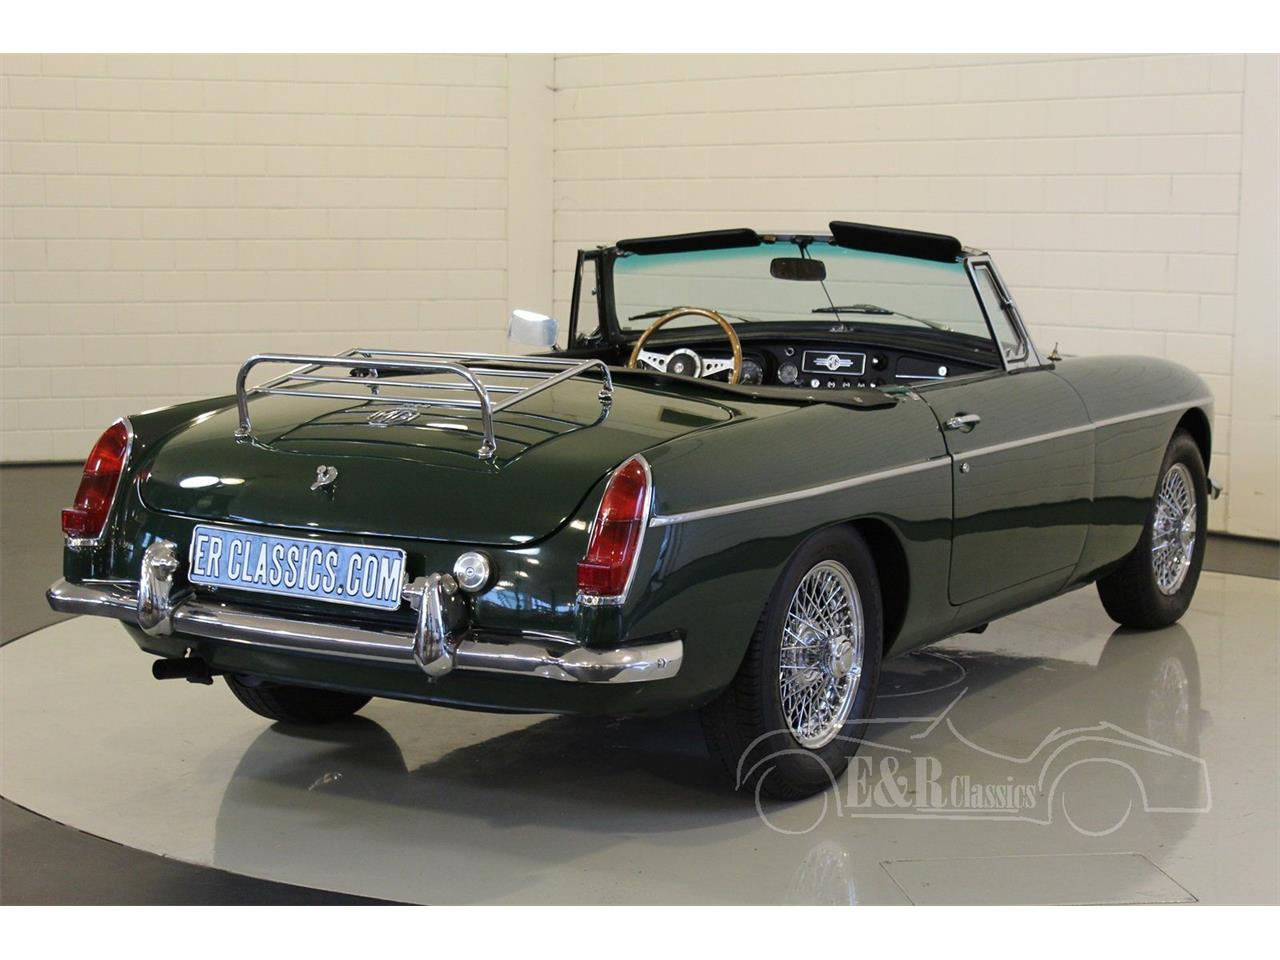 Large Picture of Classic 1964 MG MGB located in noord brabant - $27,950.00 Offered by E & R Classics - Q178